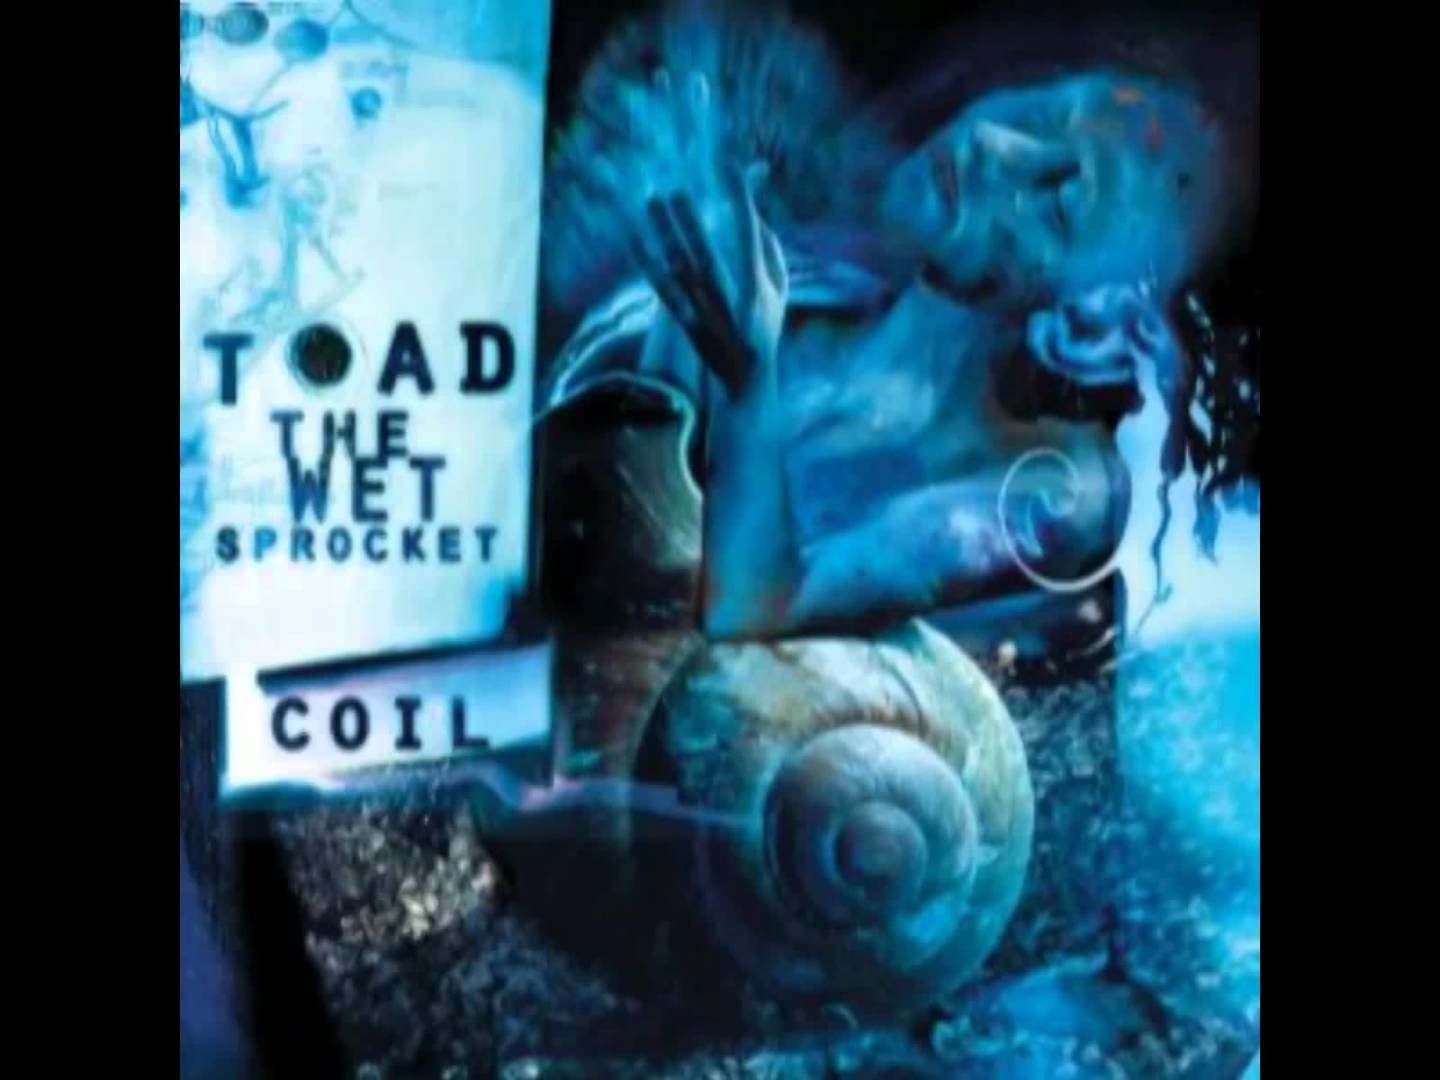 Ill bet on you toad the wet sprocket how many mhash per bitcoins